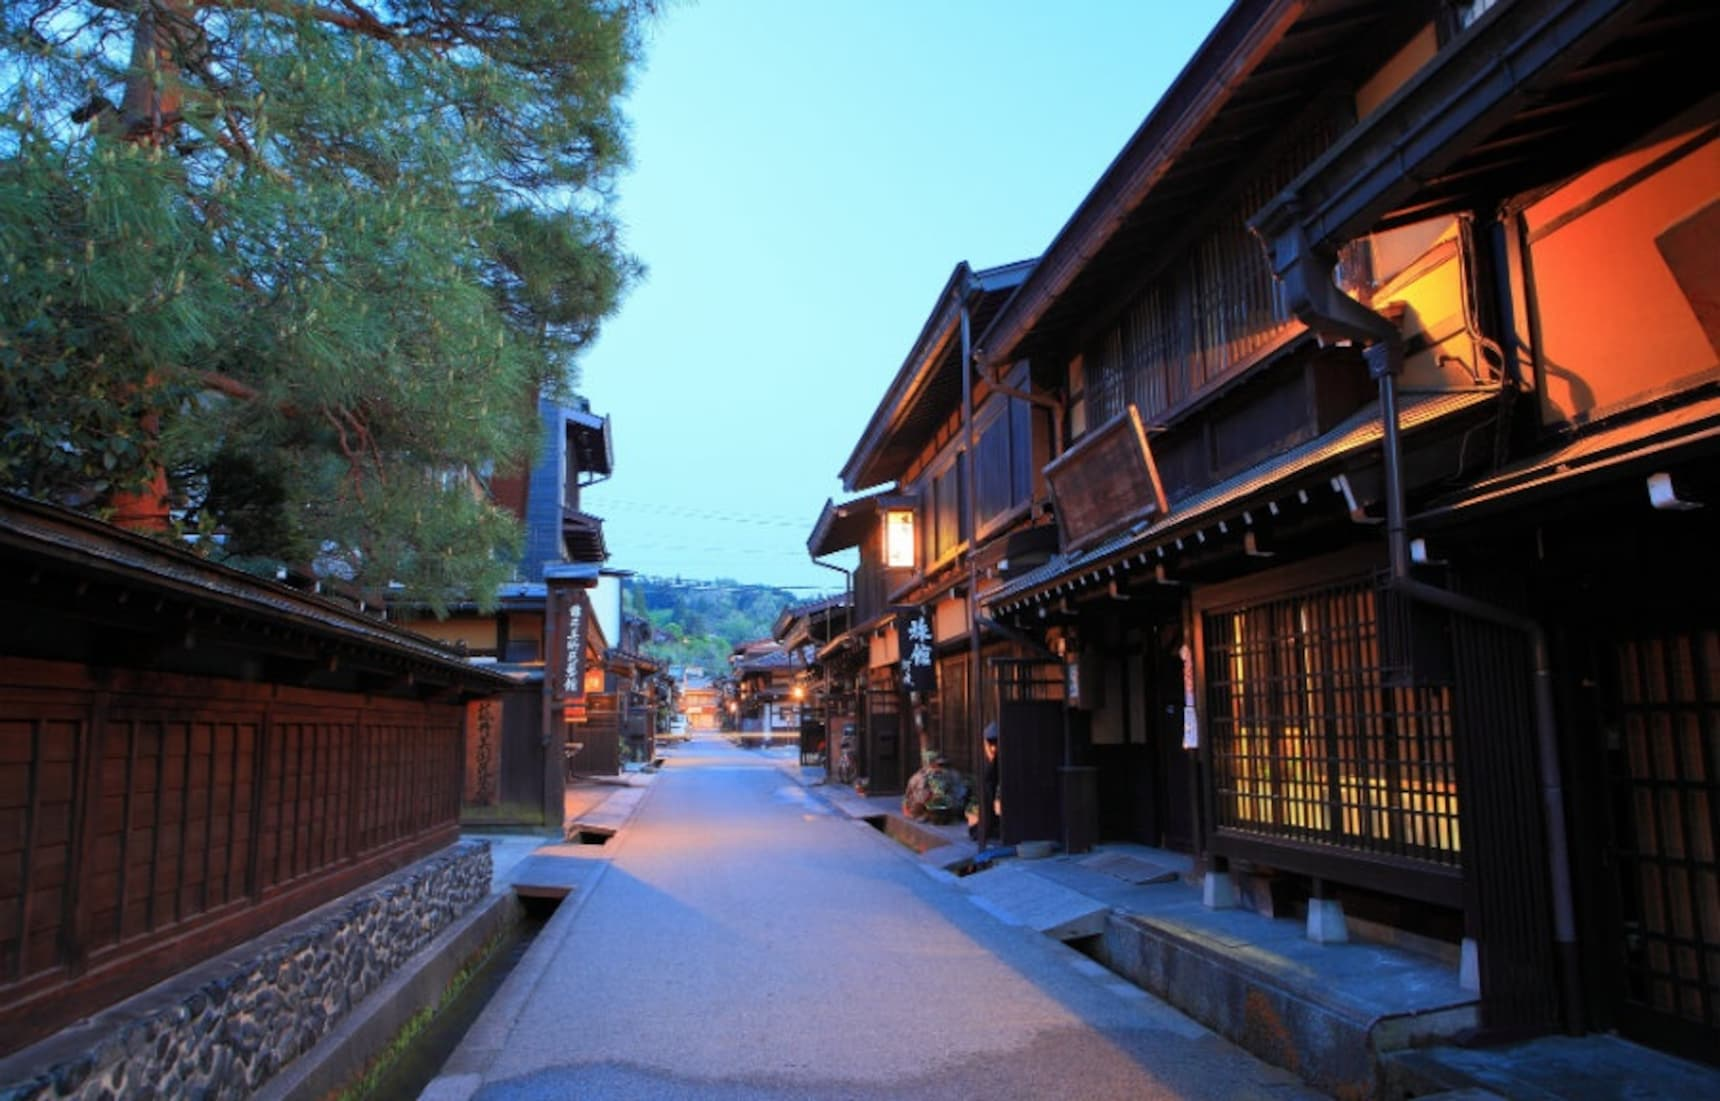 It's Easy to Discover the History of Takayama